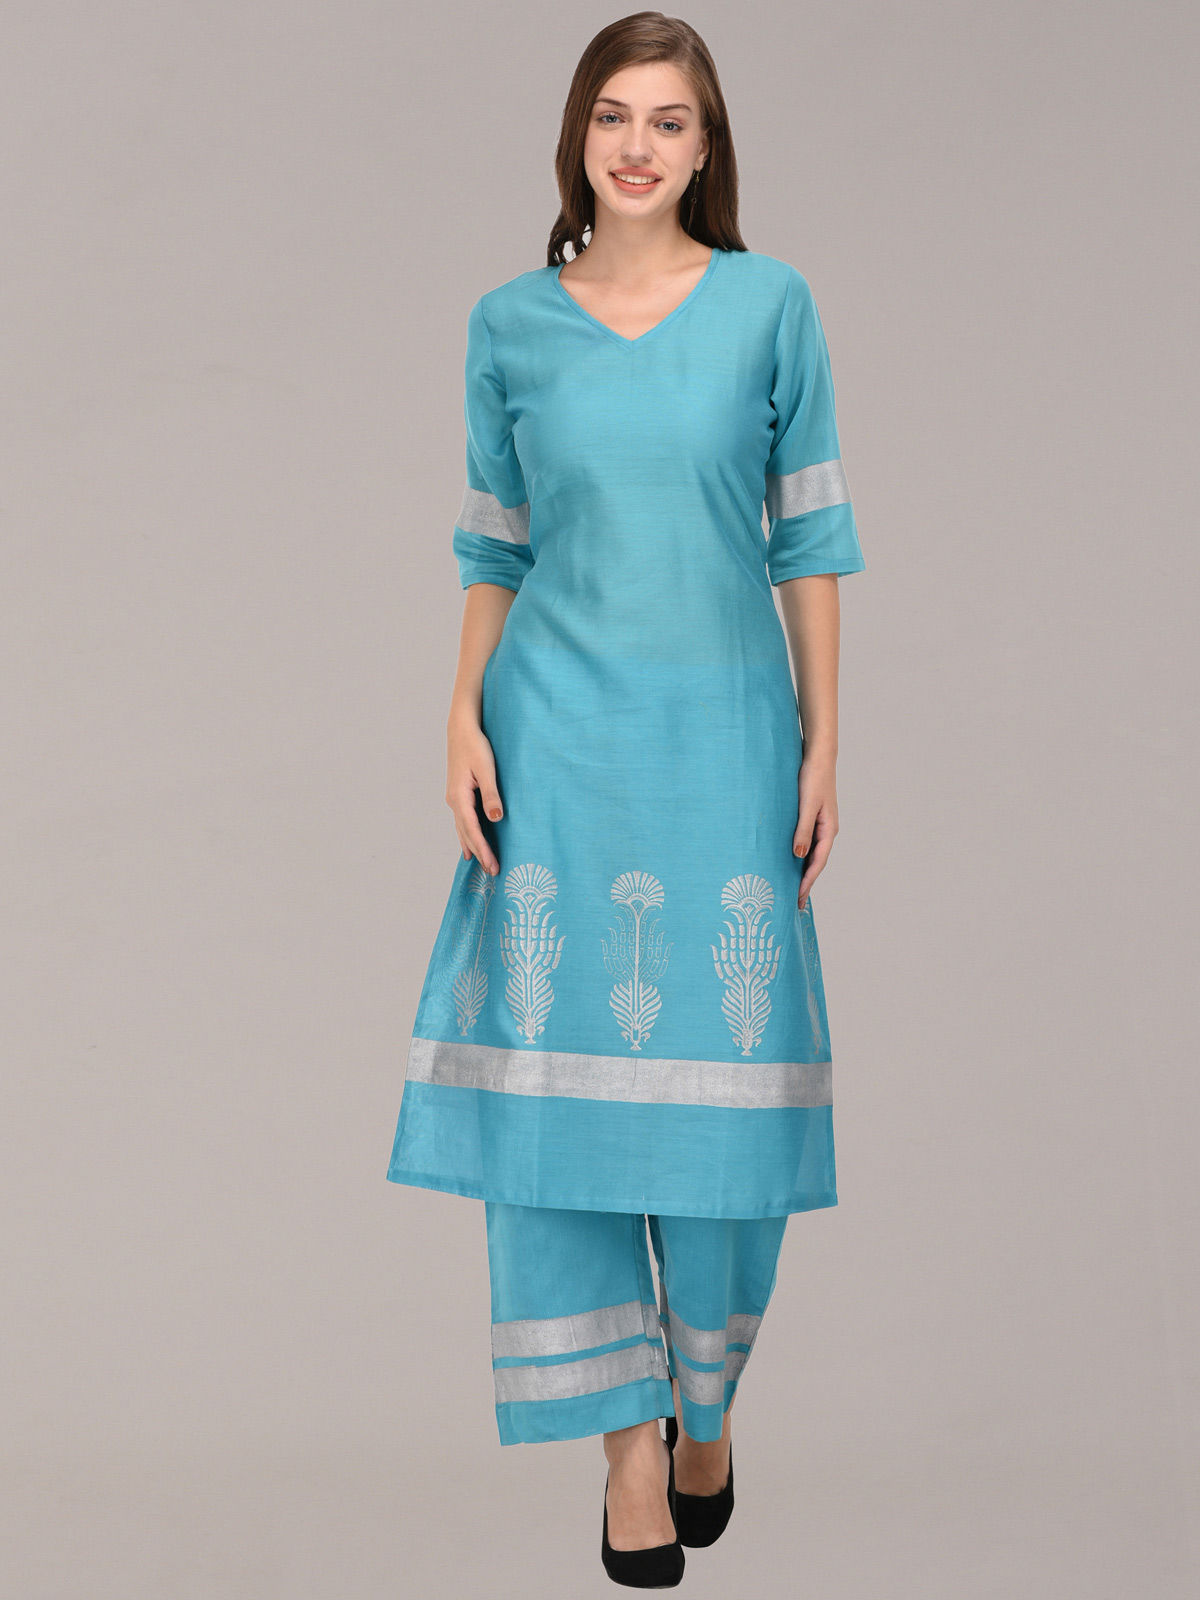 Silver Khari sky blue chanderi tunic with bottom with v shape neck